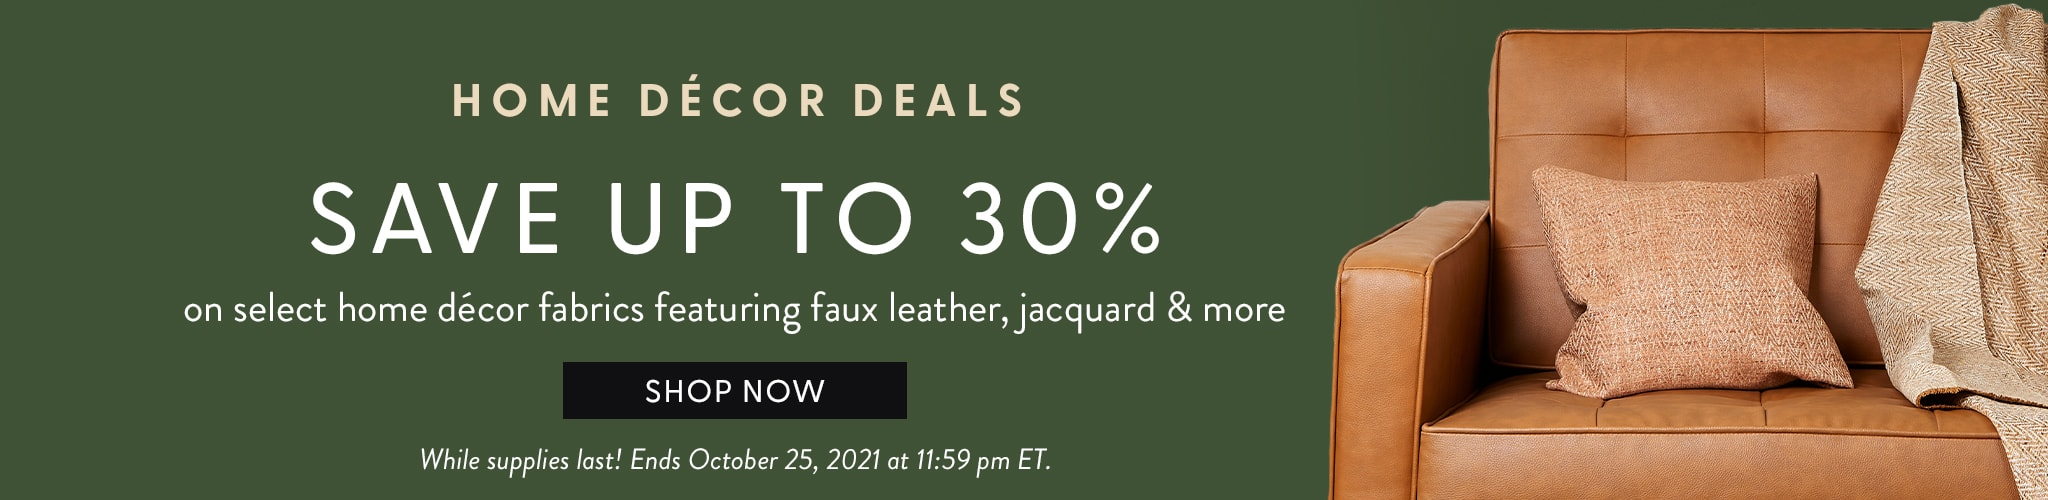 Home Decor Deals. Save up to thirty percent on select home decor fabrics featuring faux leather, jacquard and more. Shop now.